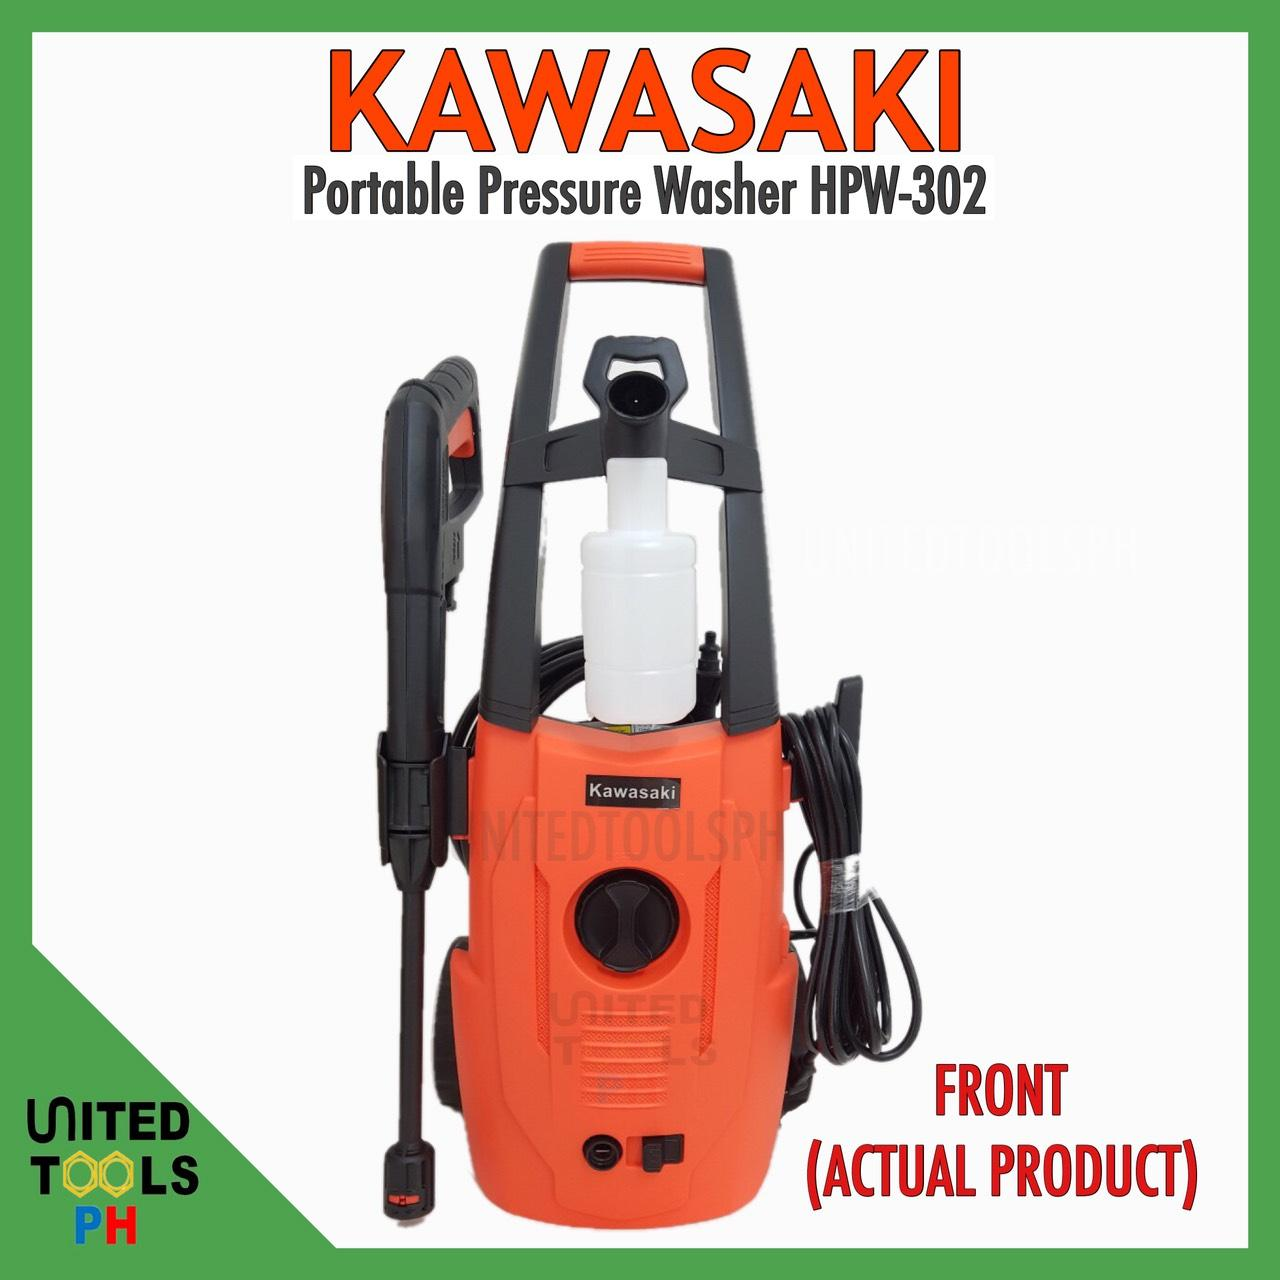 Kawasaki Portable High Pressure washer model HPW-302 Philippines